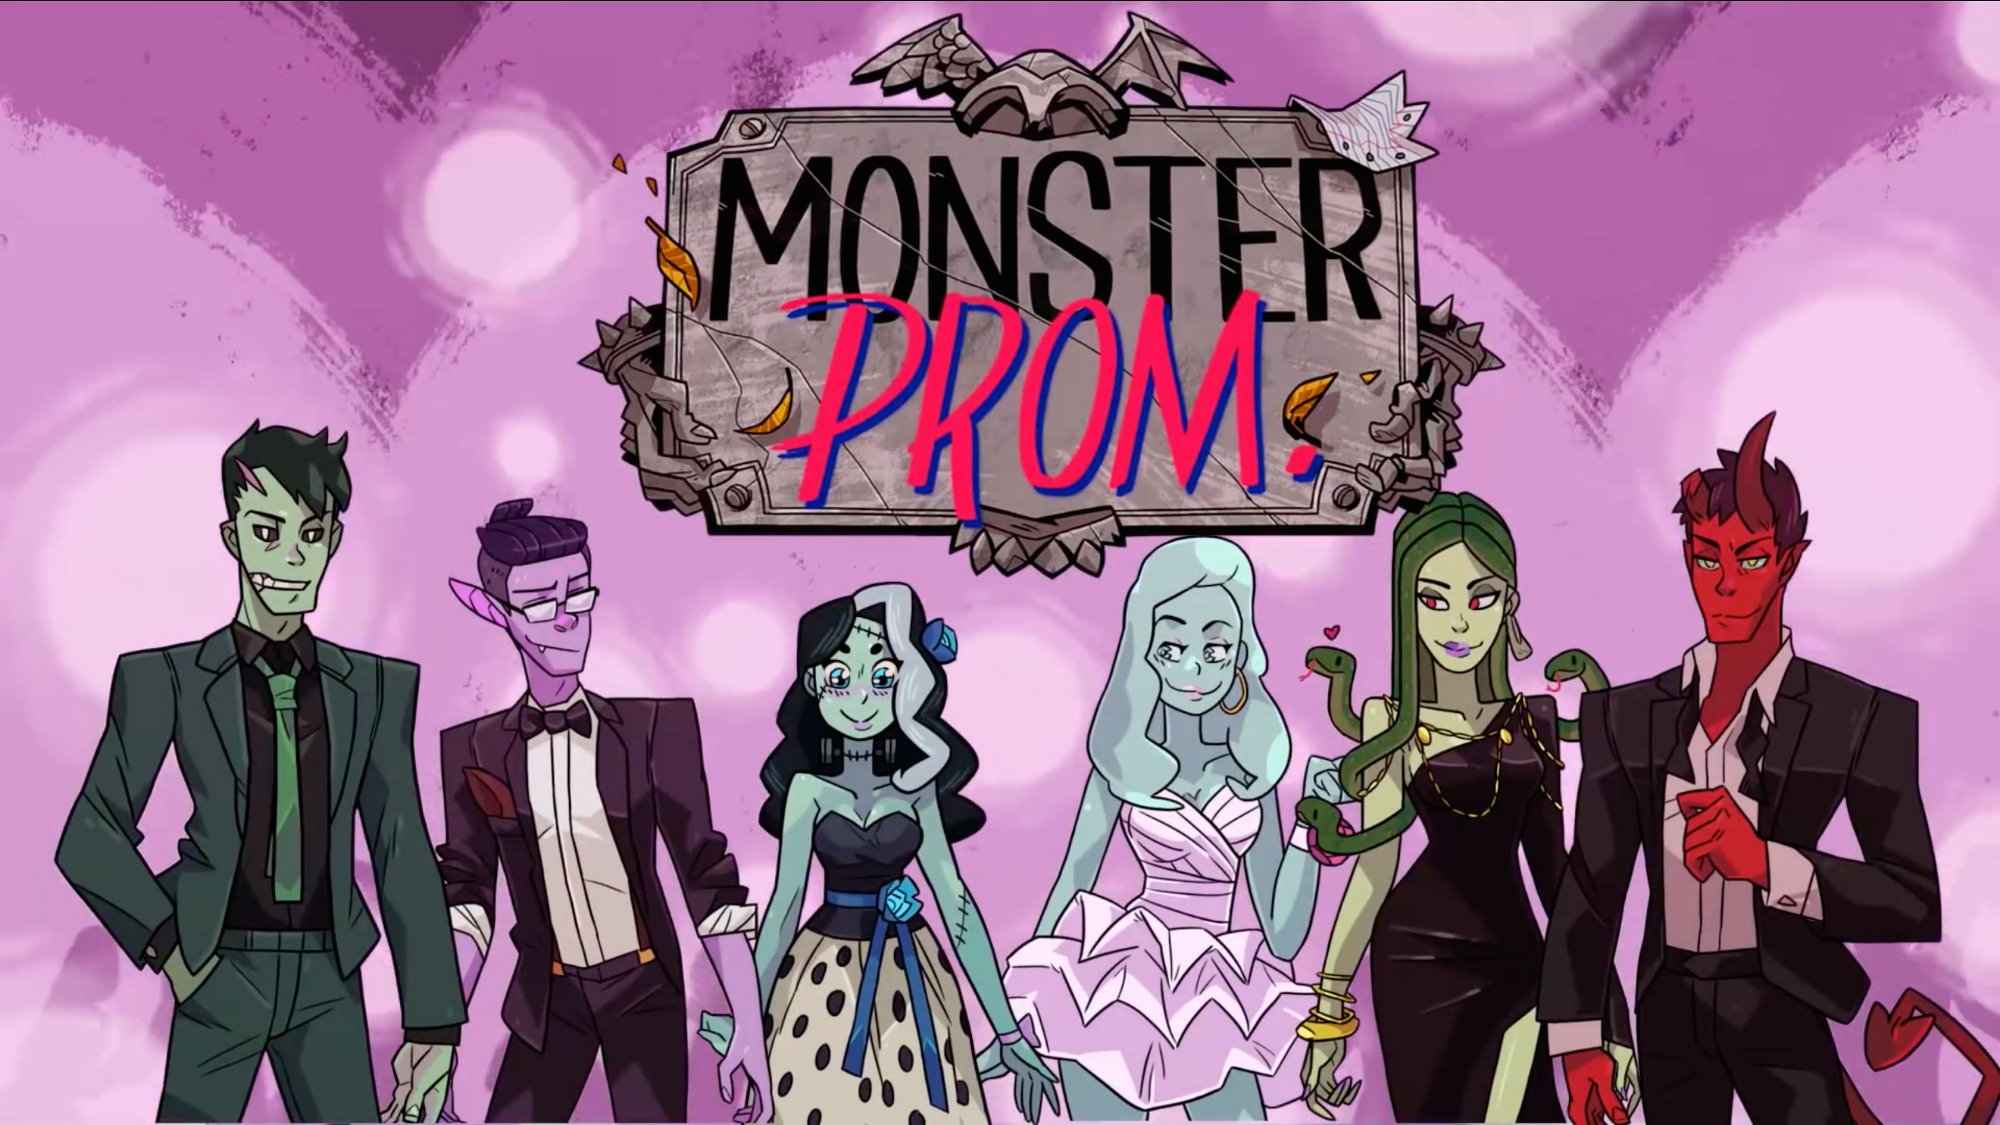 Monster dating sim